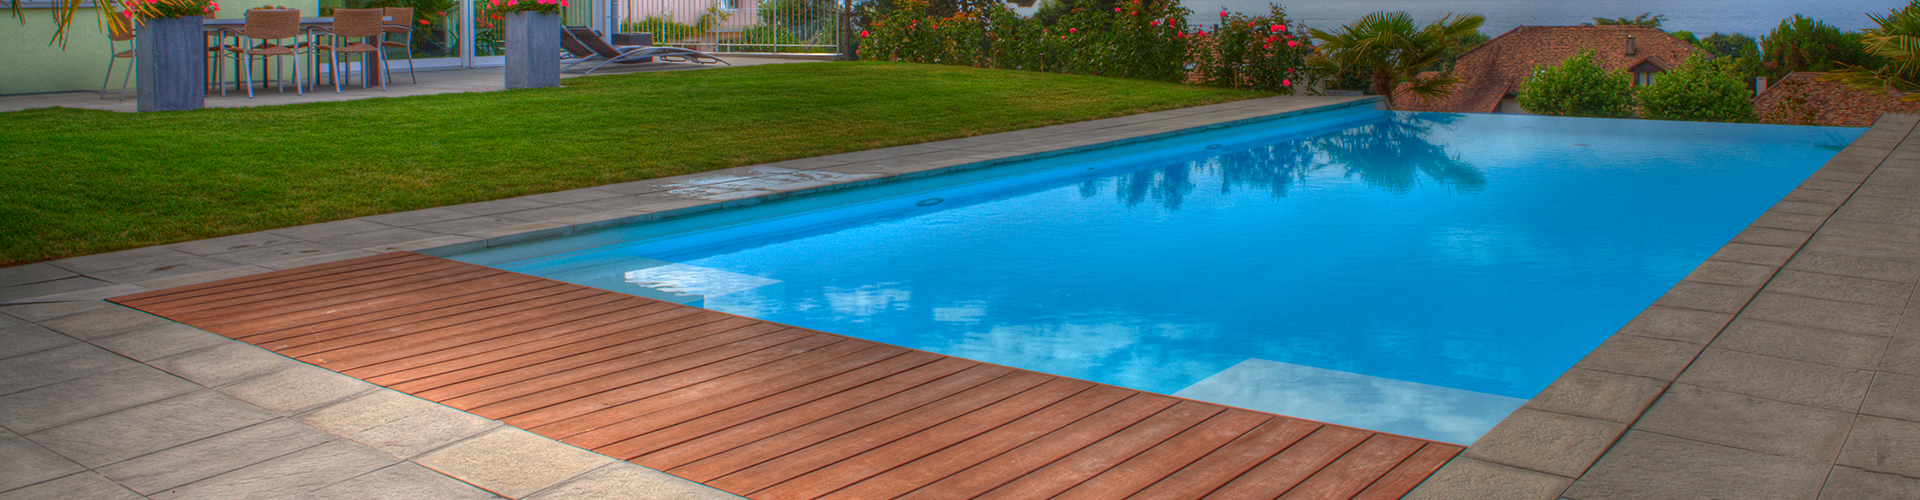 Piscine d bordement sur mesure centerspas for Piscine a debordement construction